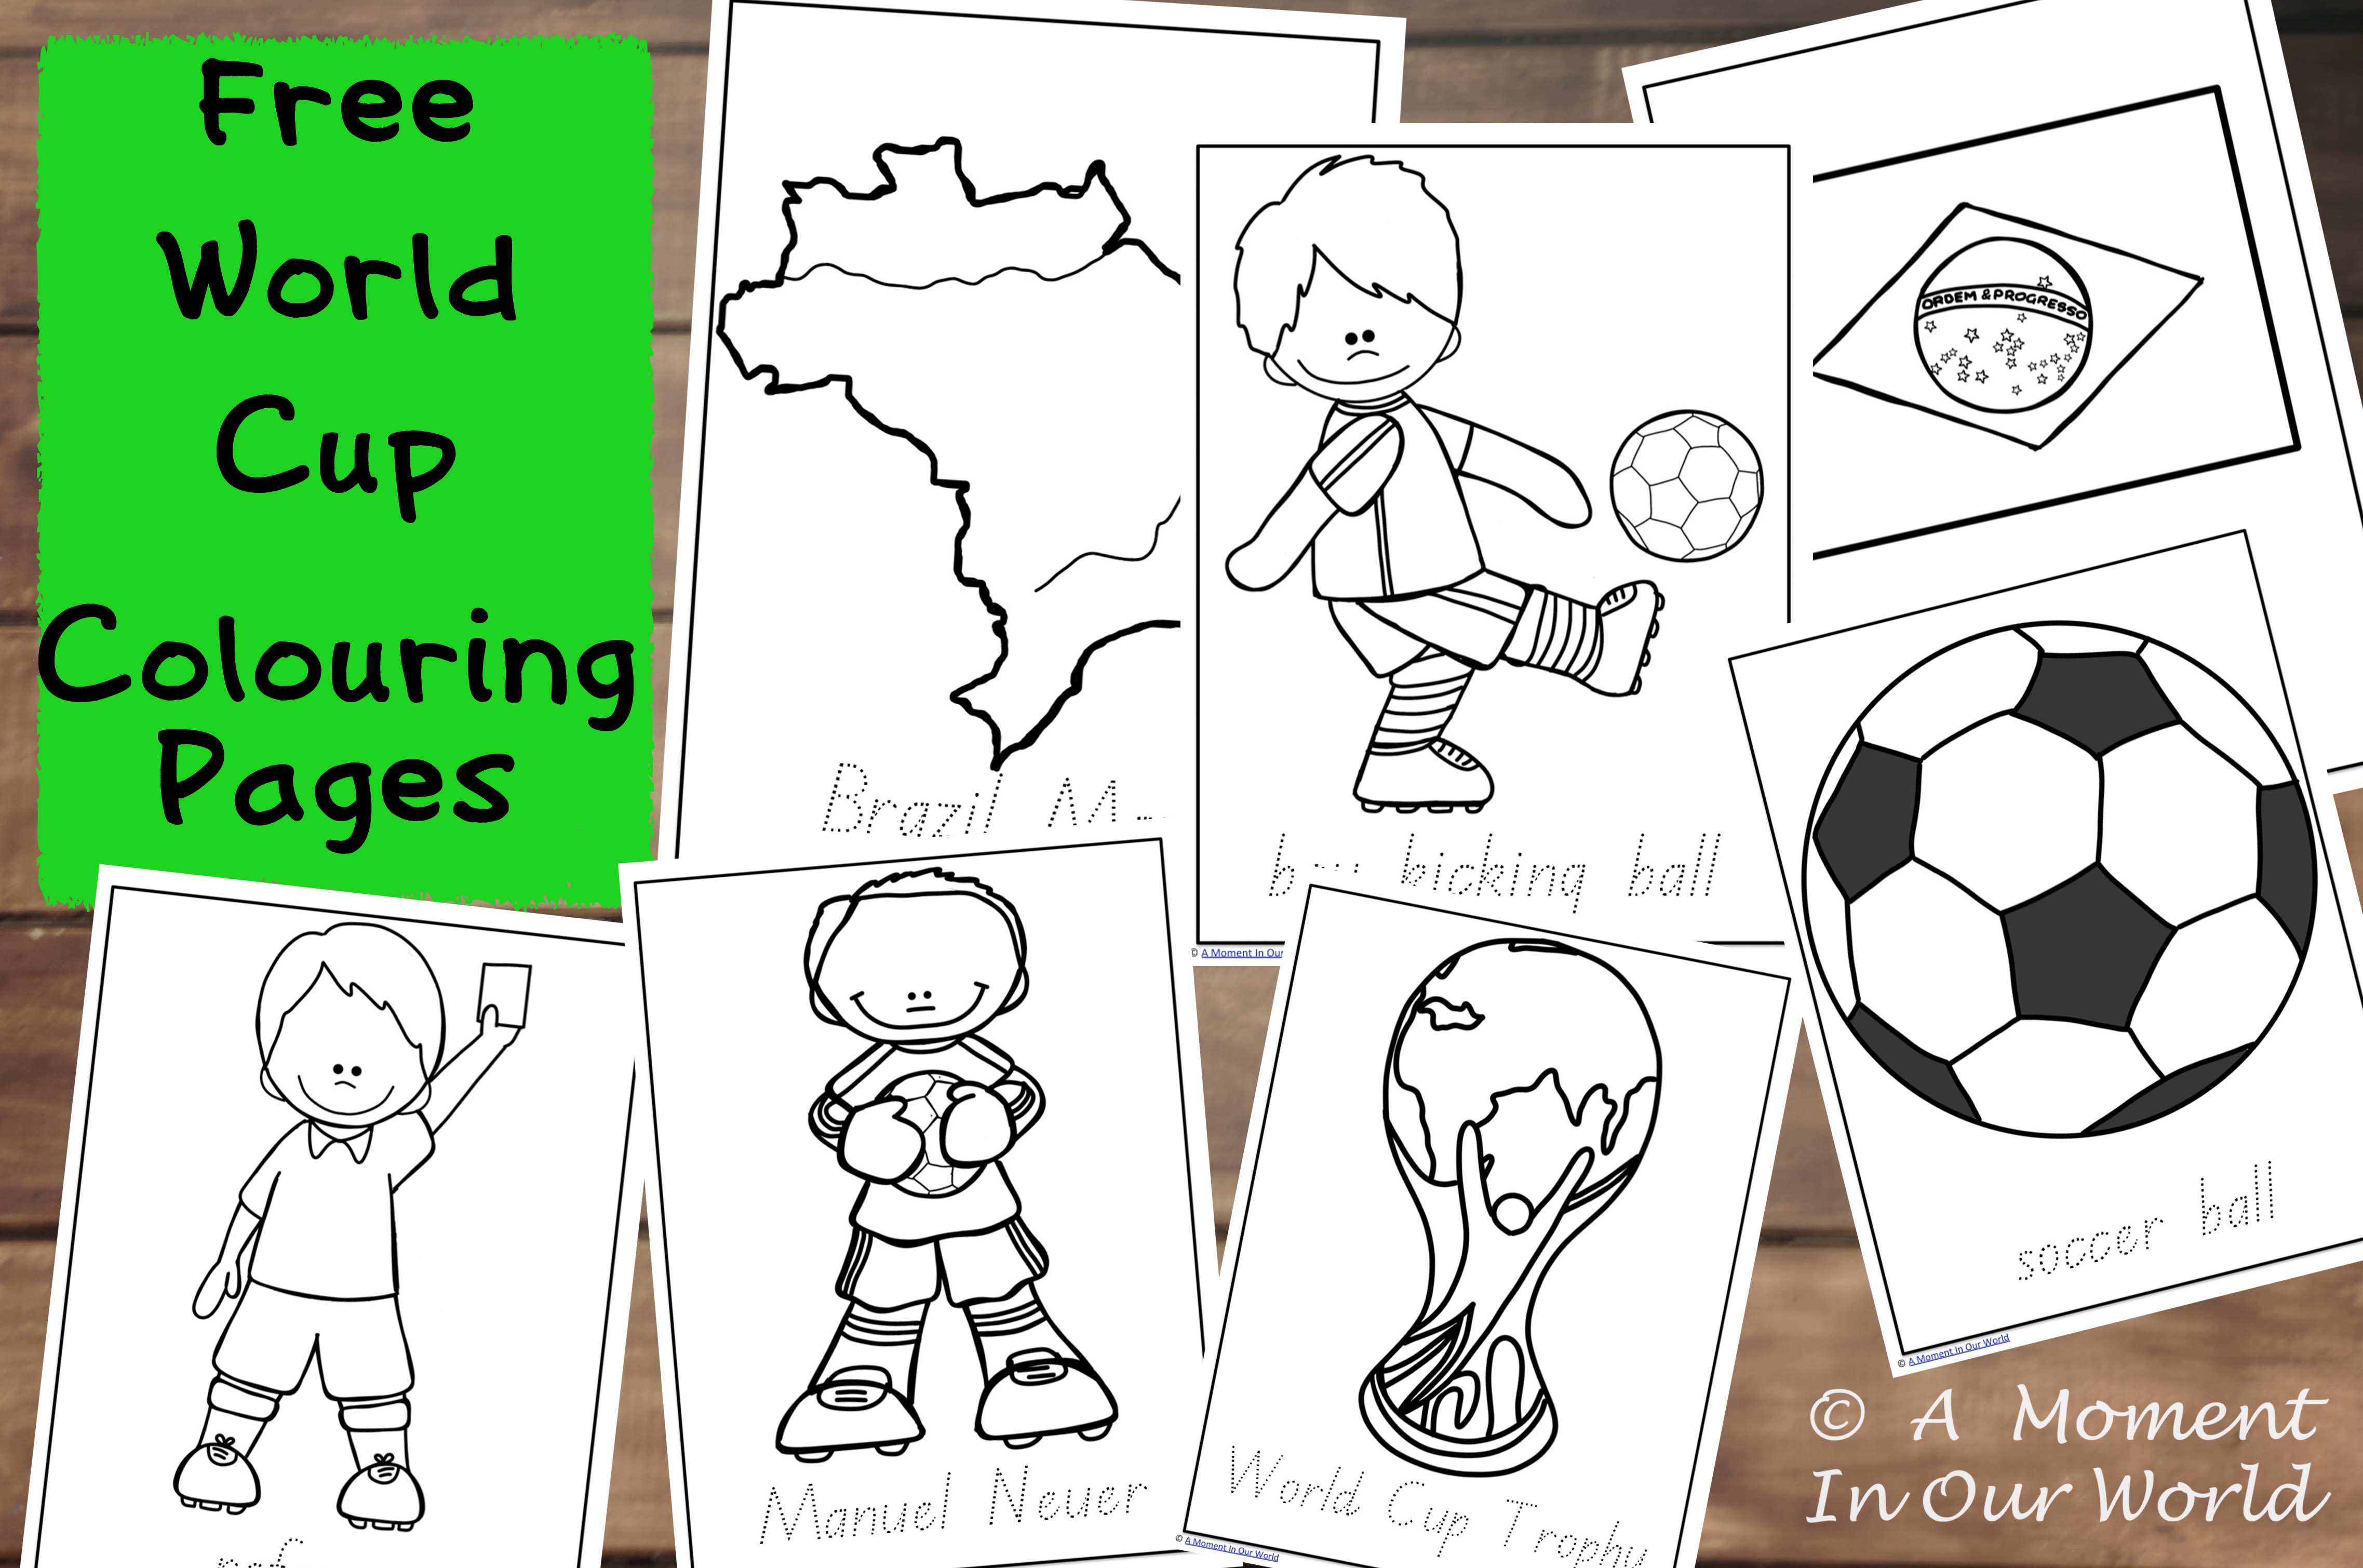 2014 fifa world cup logo coloring pages - Hellokids.com | 3019x4550